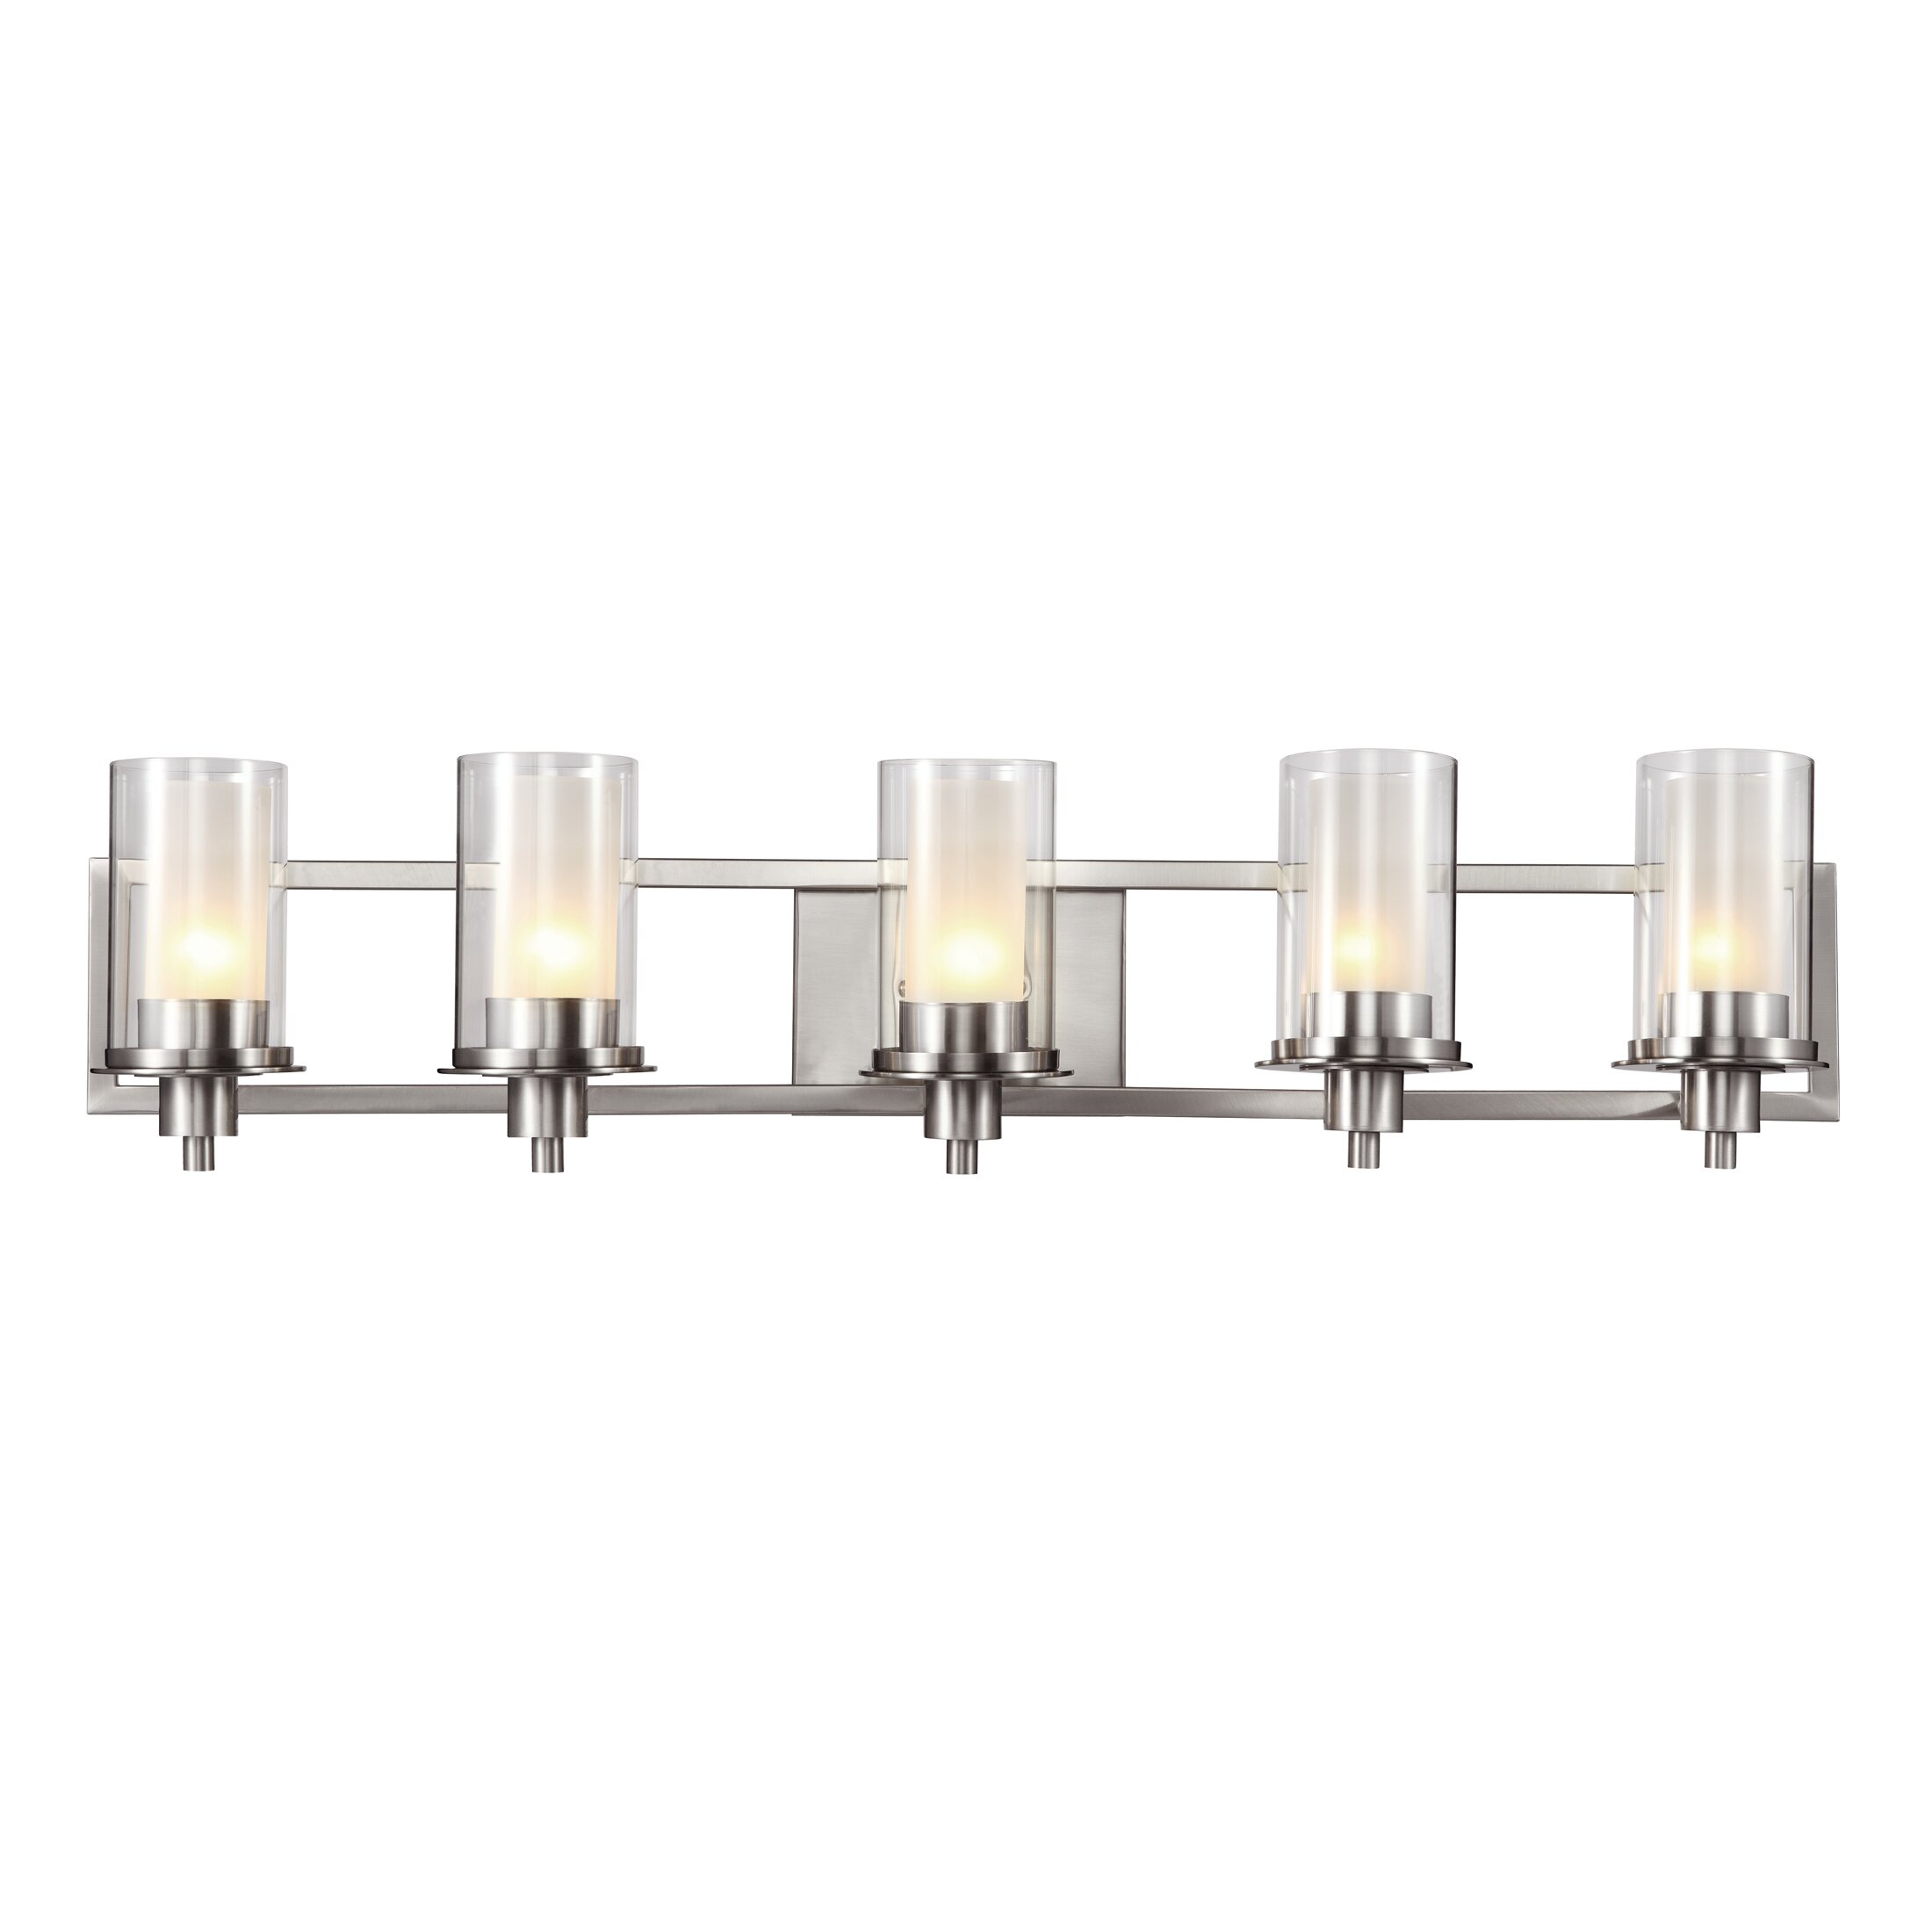 5 Light Bathroom Vanity Light: TransGlobe Lighting 5 Light Vanity Light & Reviews